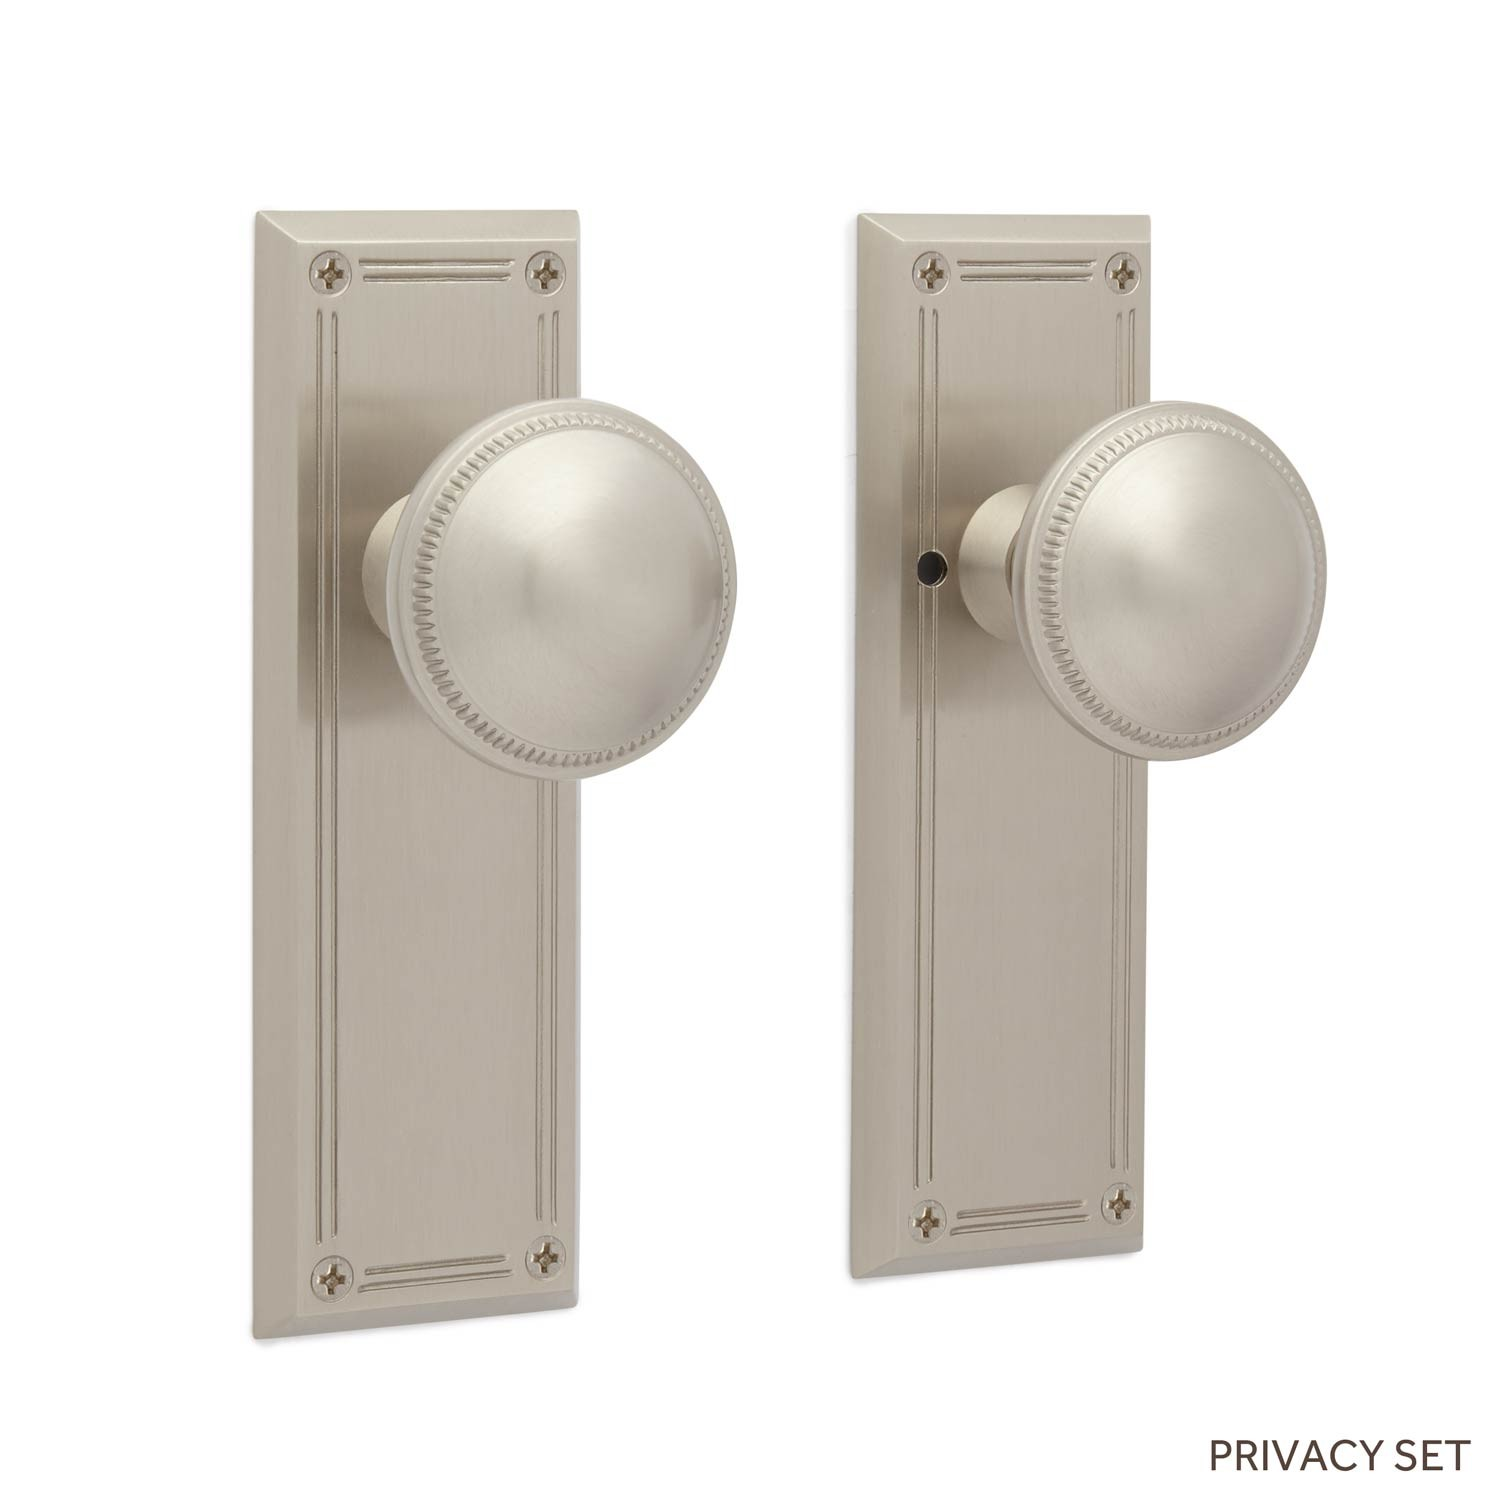 privacy door knob set photo - 11